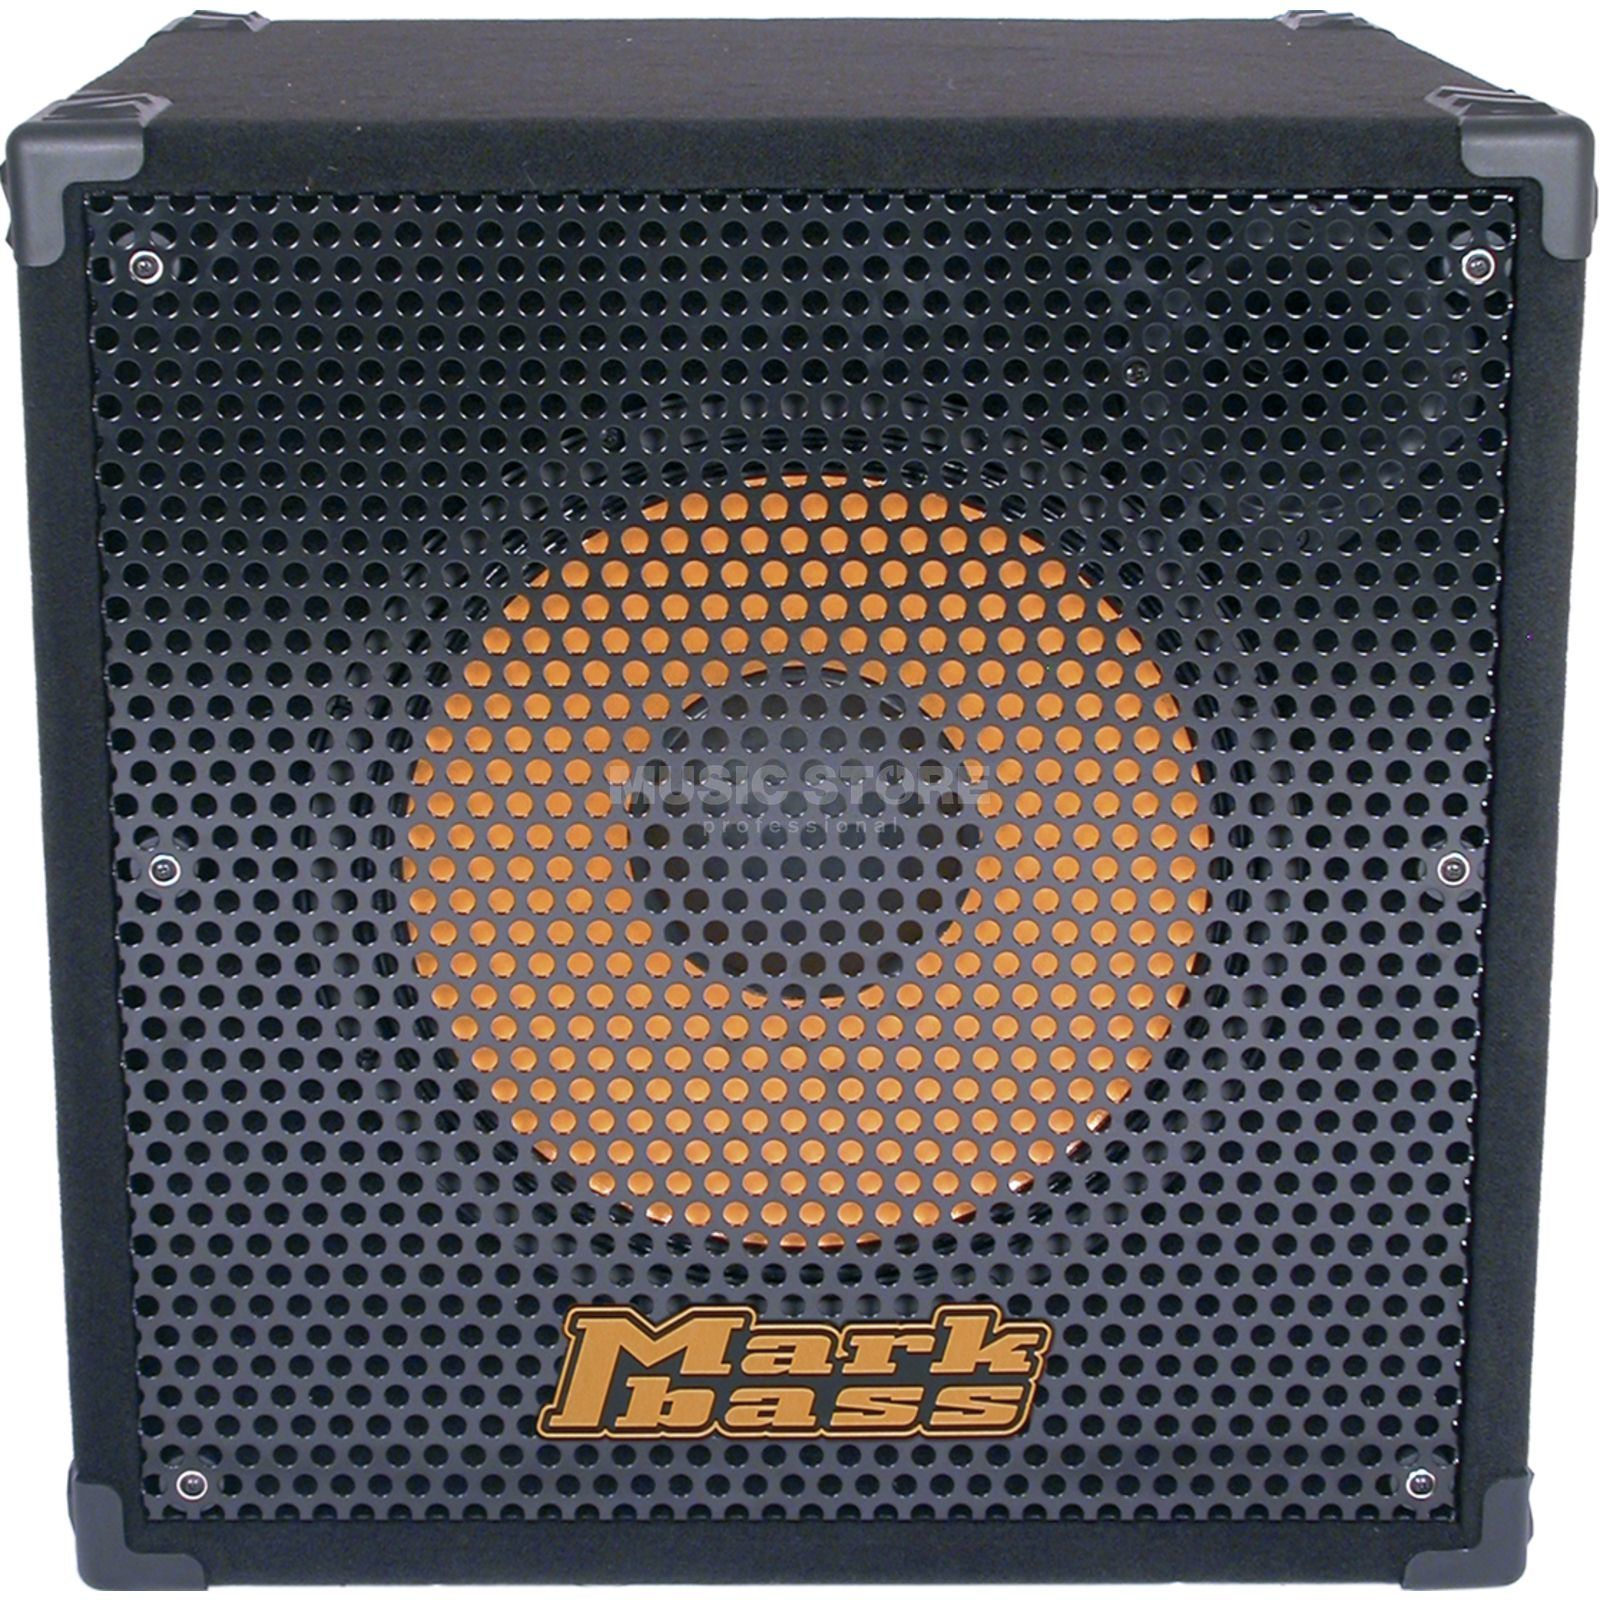 Markbass standaard 151 HR 8 Ohm Cabinet  Productafbeelding